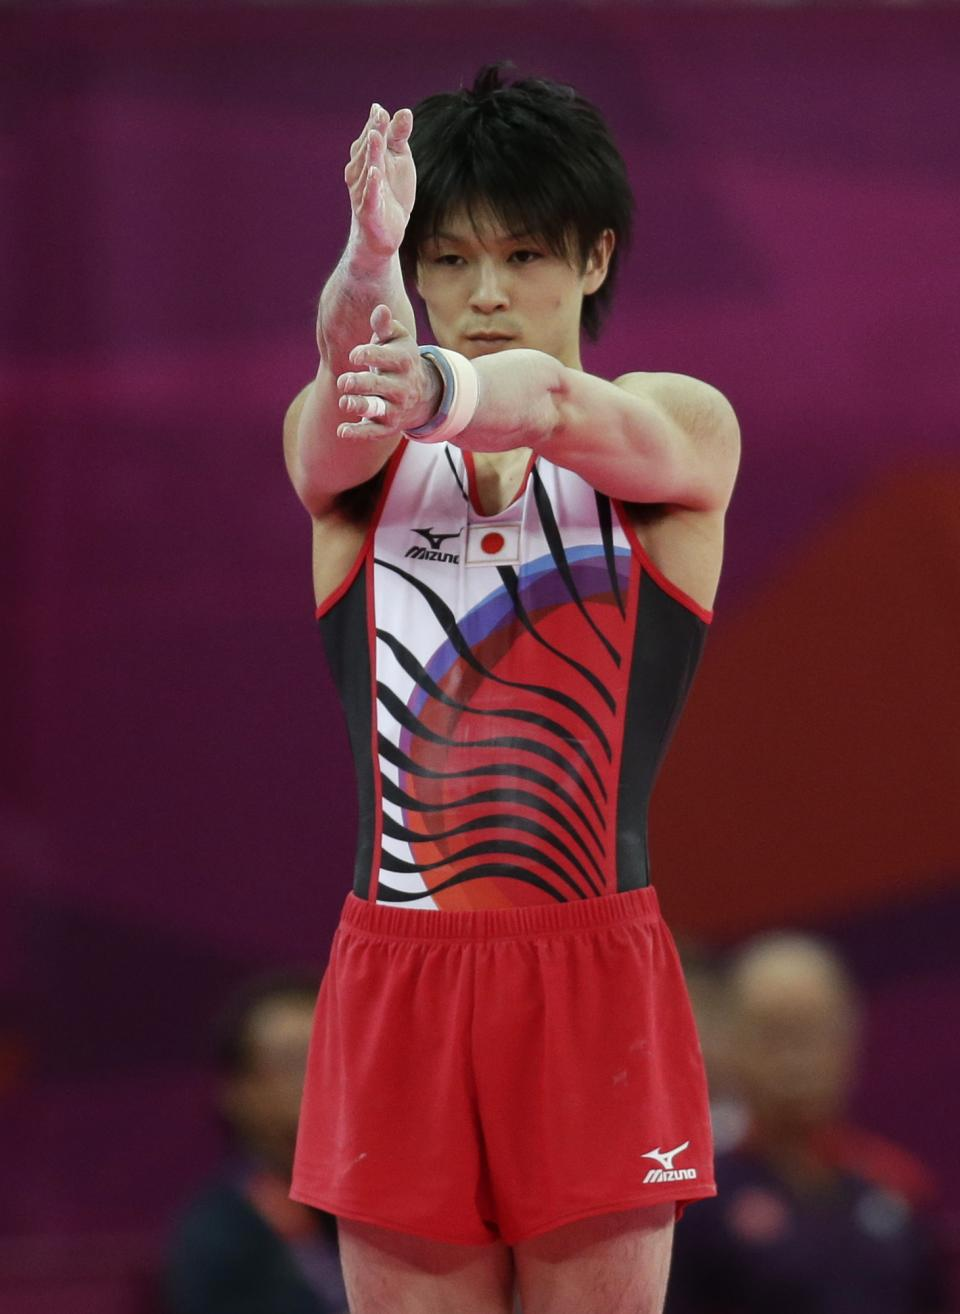 Japanese gymnast Kohei Uchimura measures his run prior to his vault exercise during the Artistic Gymnastics men's qualification at the 2012 Summer Olympics, Saturday, July 28, 2012, in London. (AP Photo/Gregory Bull)